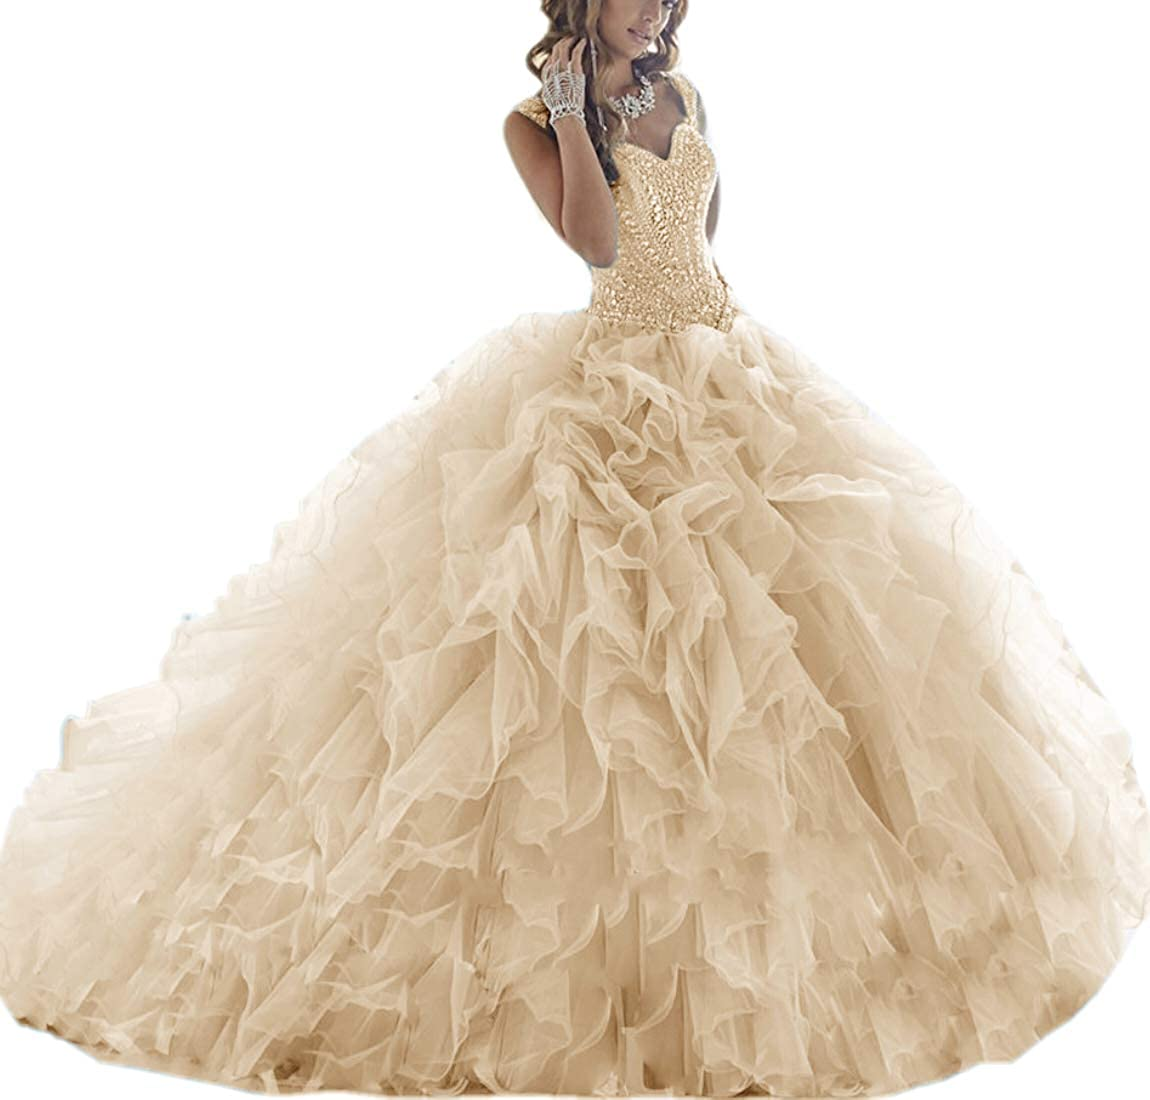 Champagne APXPF Women's Crystals Beaded Organza Ruffle Quinceanera Dress Sweet 16 Ball Gown Prom Dress